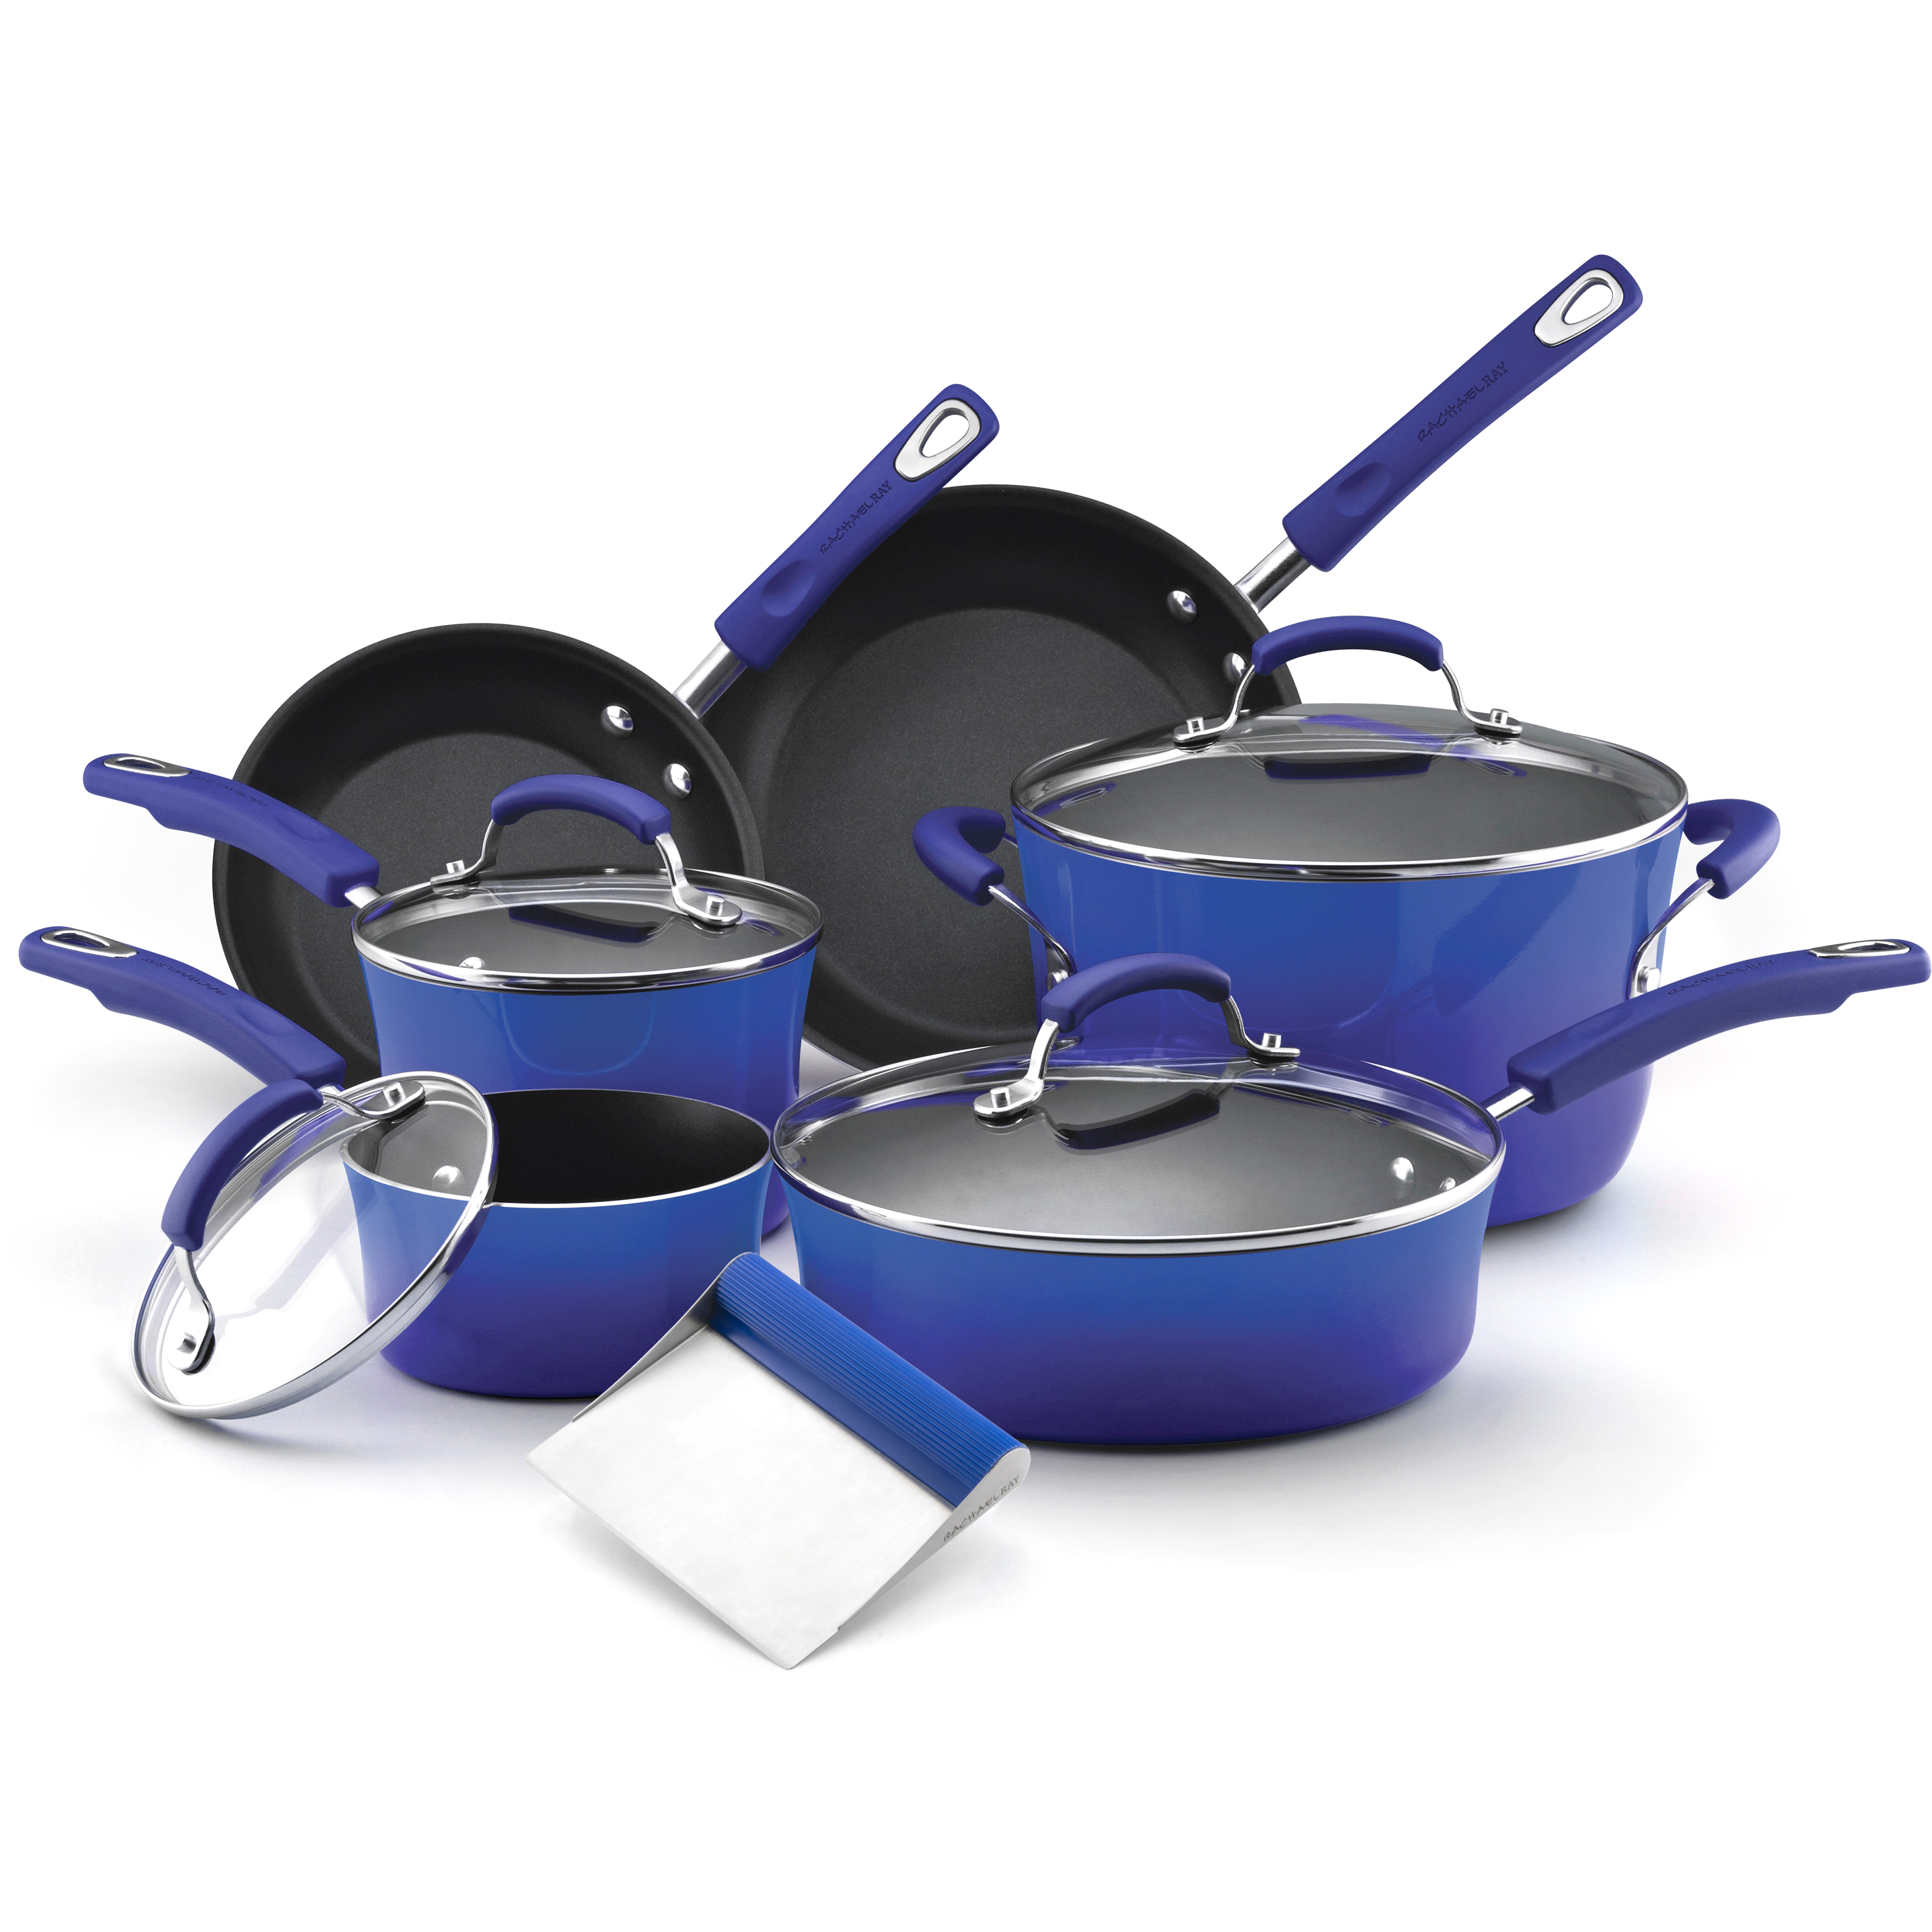 Rachael Ray Blue Porcelain Enamel II 10 Piece Cookware Set with Free Bench Scraper